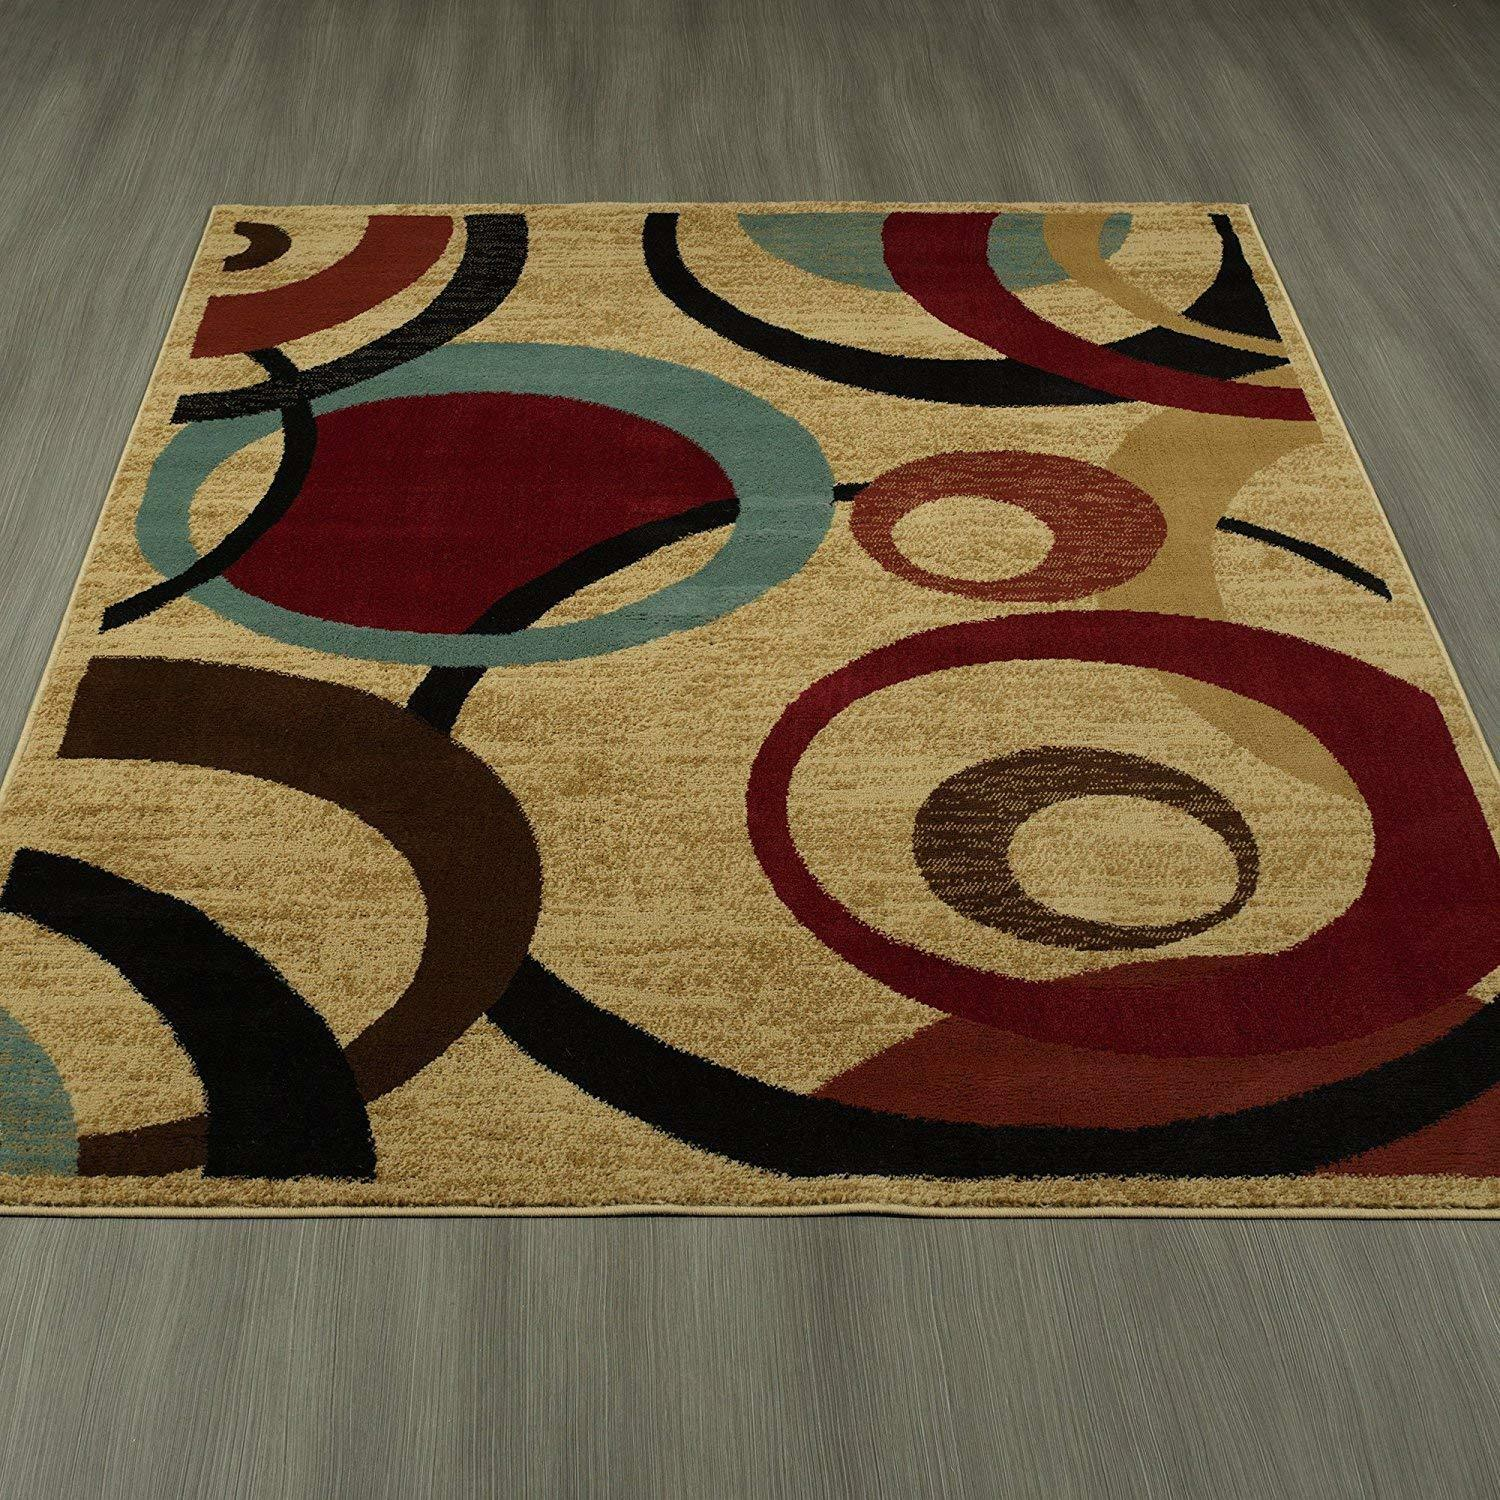 Modern Geometric Area Rug Circles 5 X 7 Beige Burgundy Red Brown Teal Turkey For Sale Online